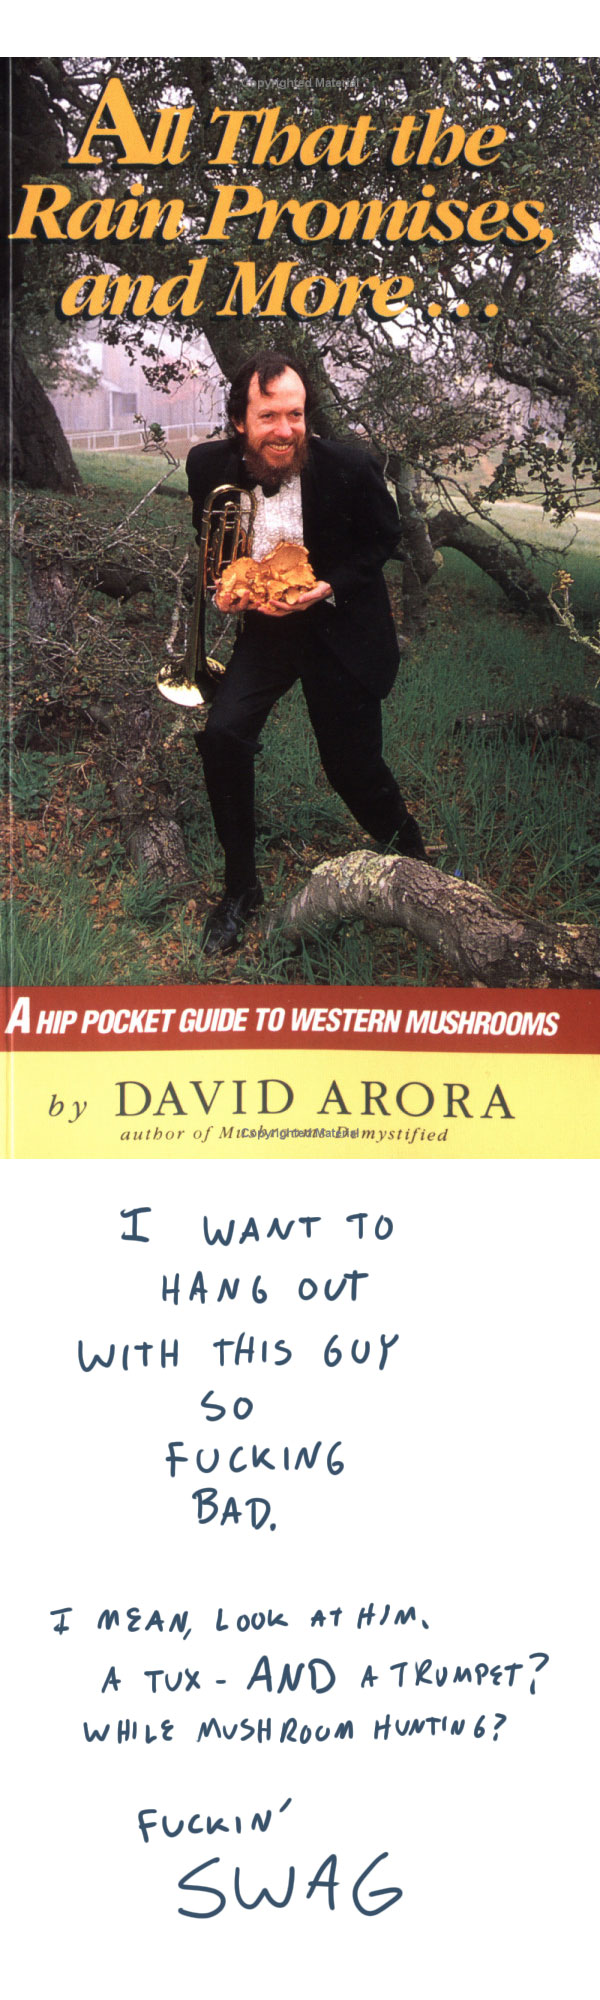 Ugly Book Cover Art : Ugly book covers mushroom hunting by romanjones on deviantart